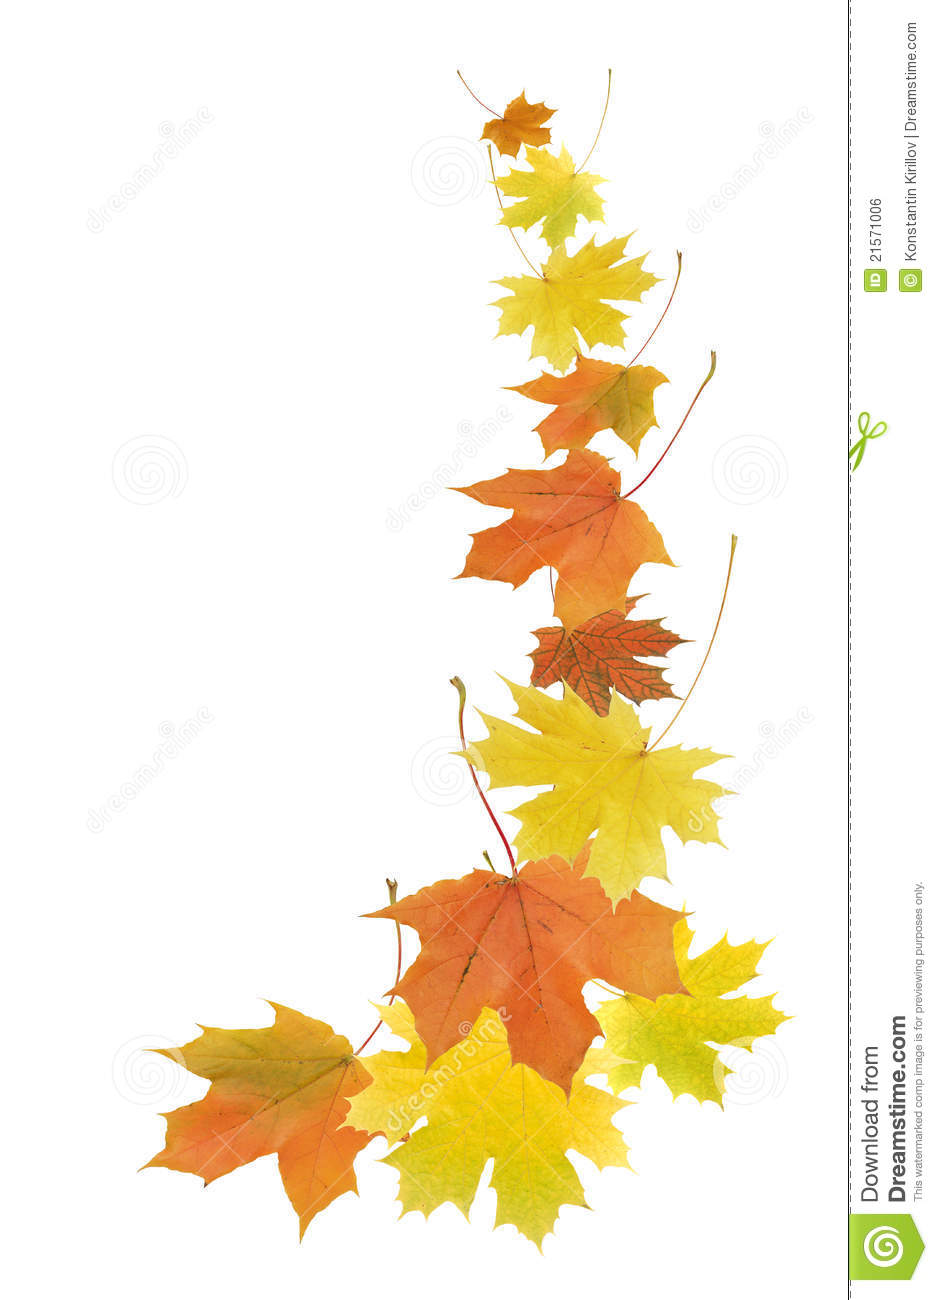 ... border made from color falling maple leaves. Fall Leaf Page Border